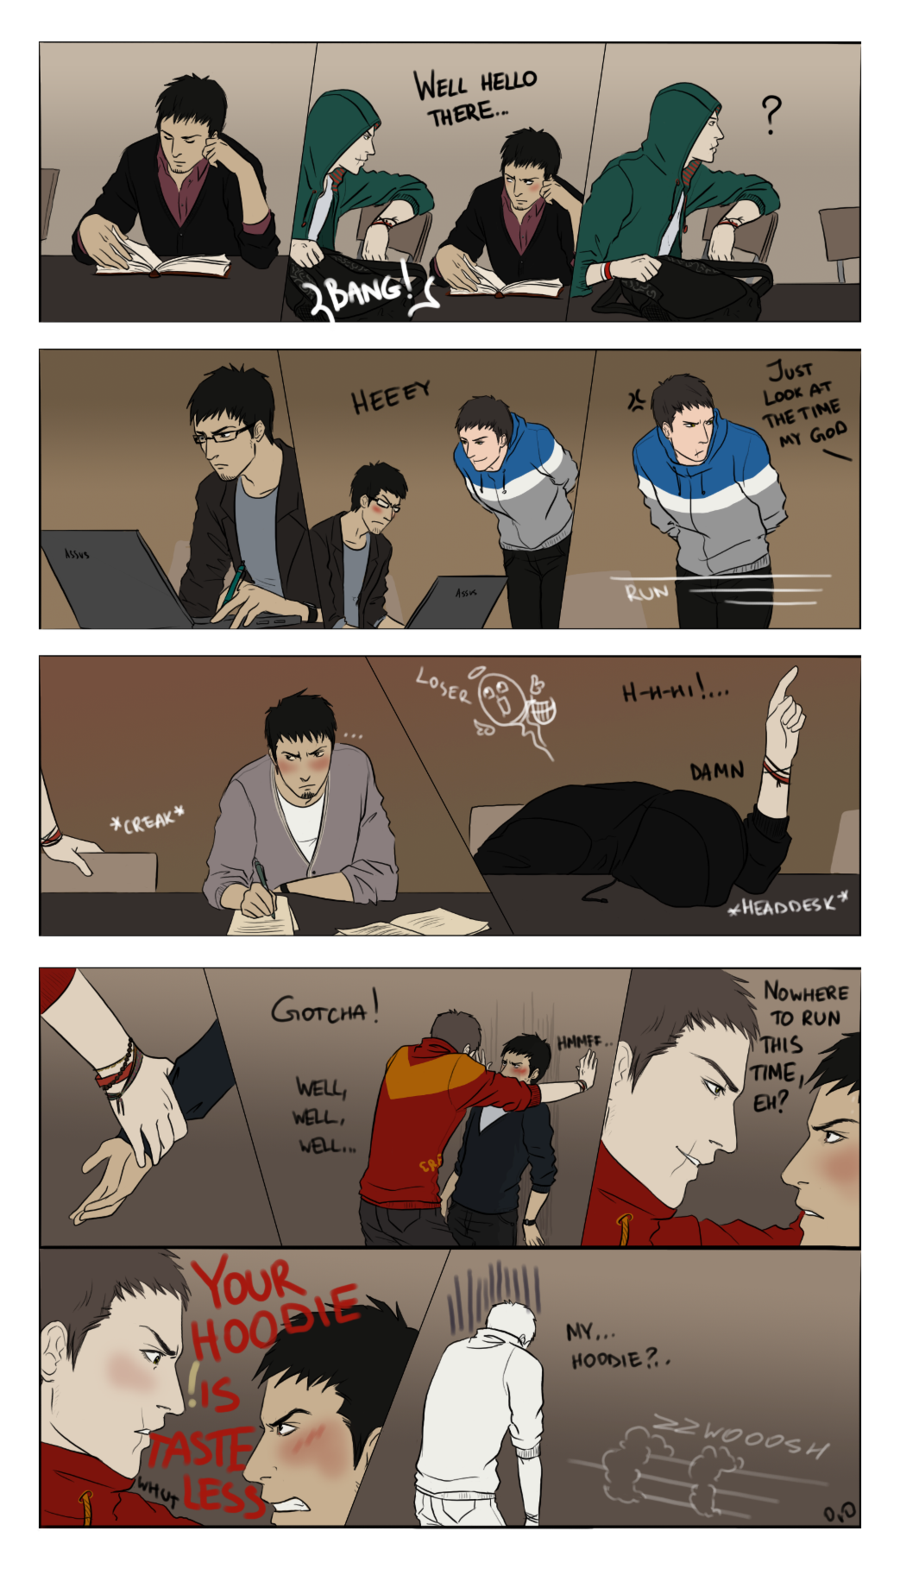 """Assasin Animated Porn Gay ac college au: altair fails at flirting with malik. """"college"""